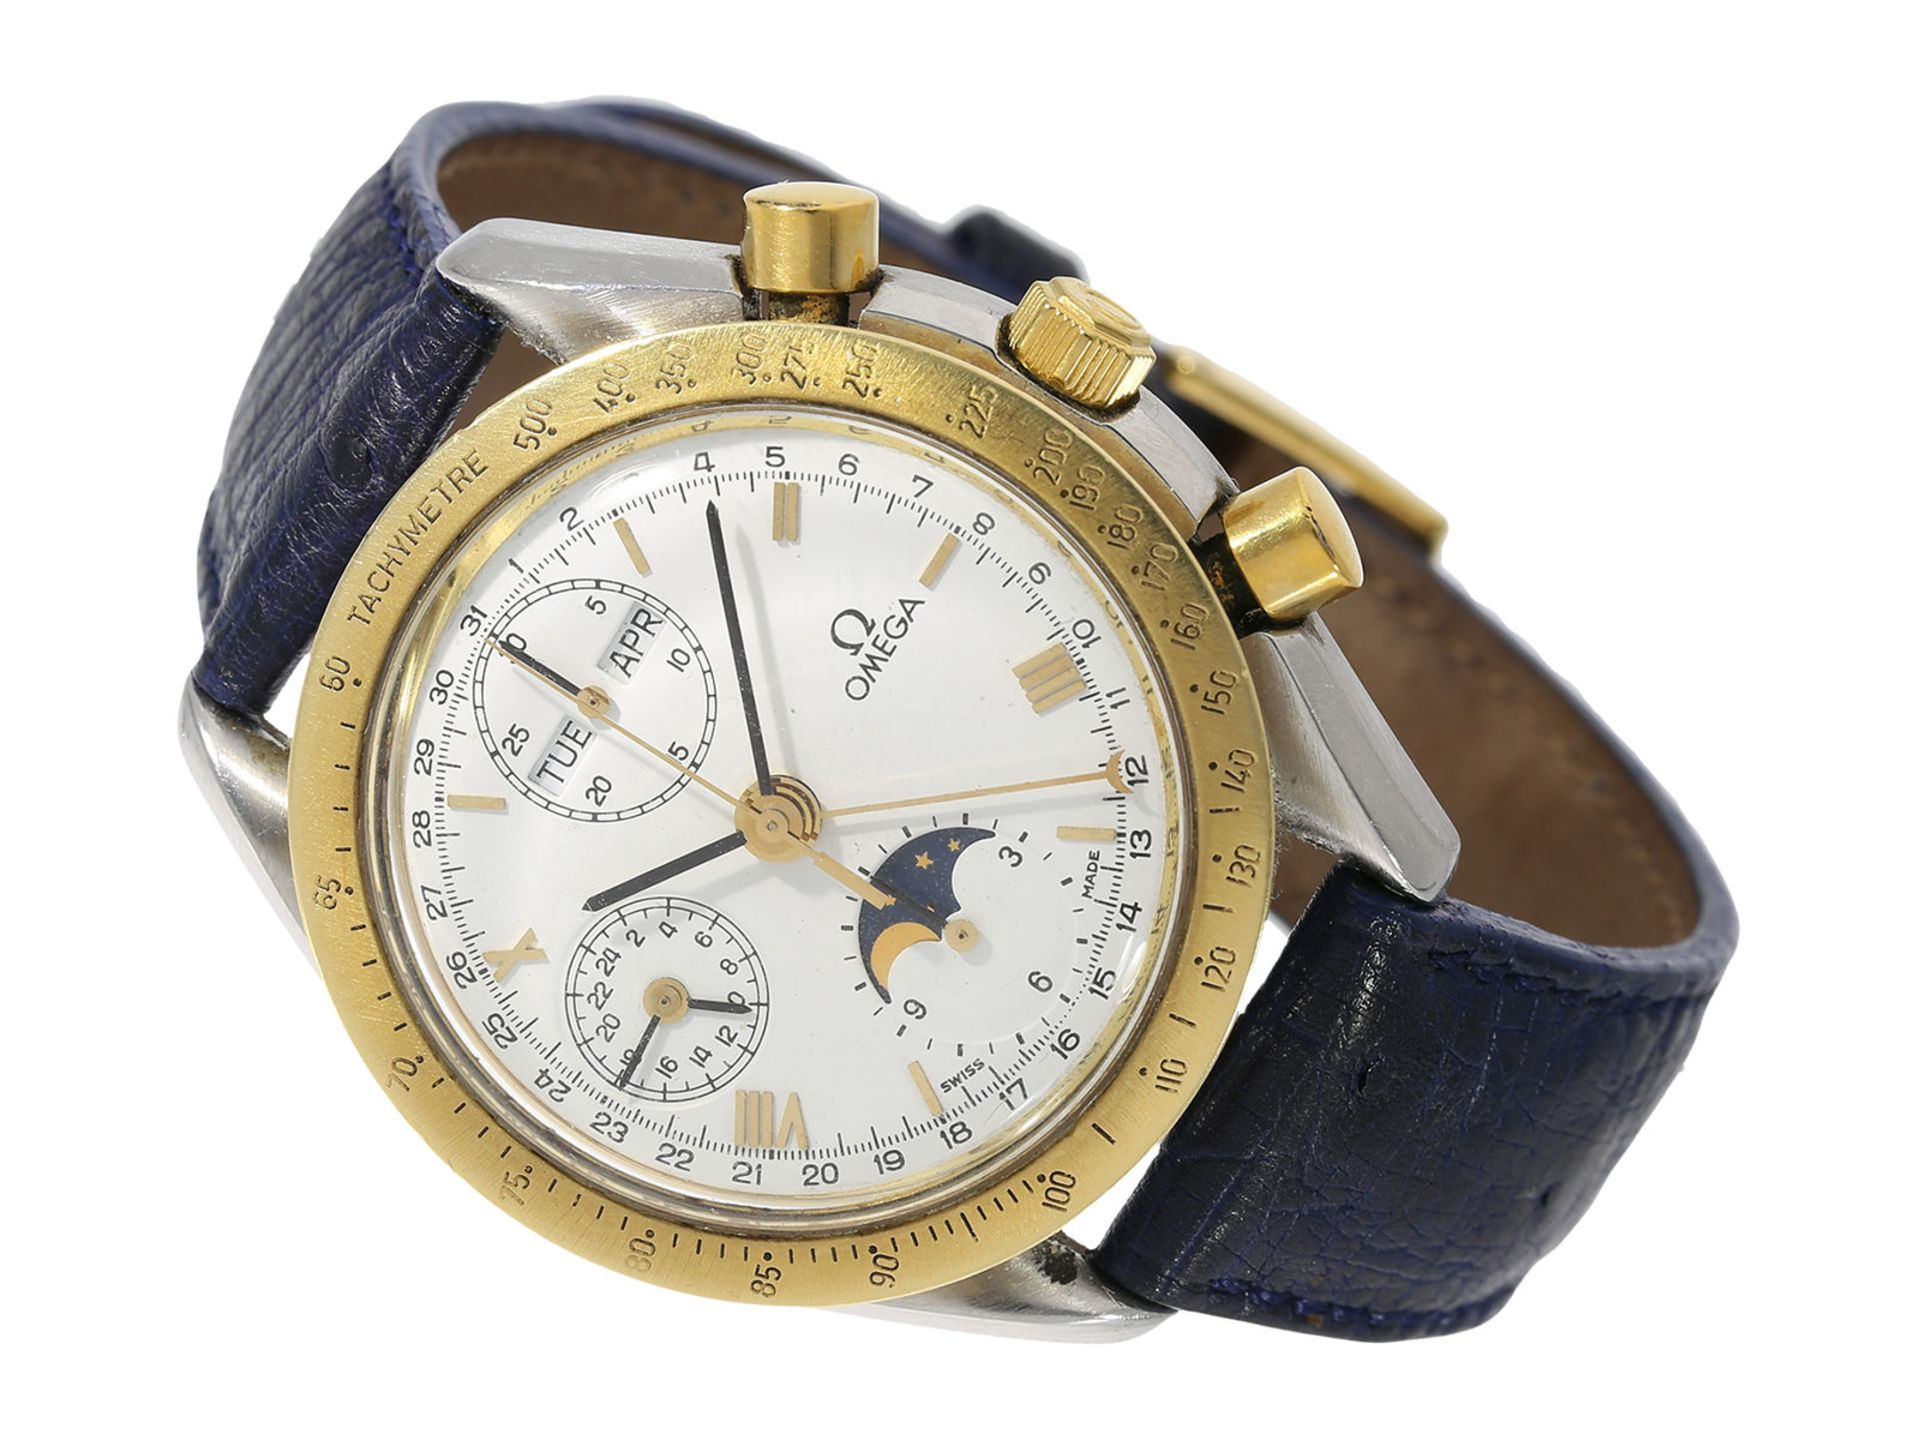 Wristwatch: rare vintage Omega chronograph with triple calendar and moon phase, Omega Speedmaster